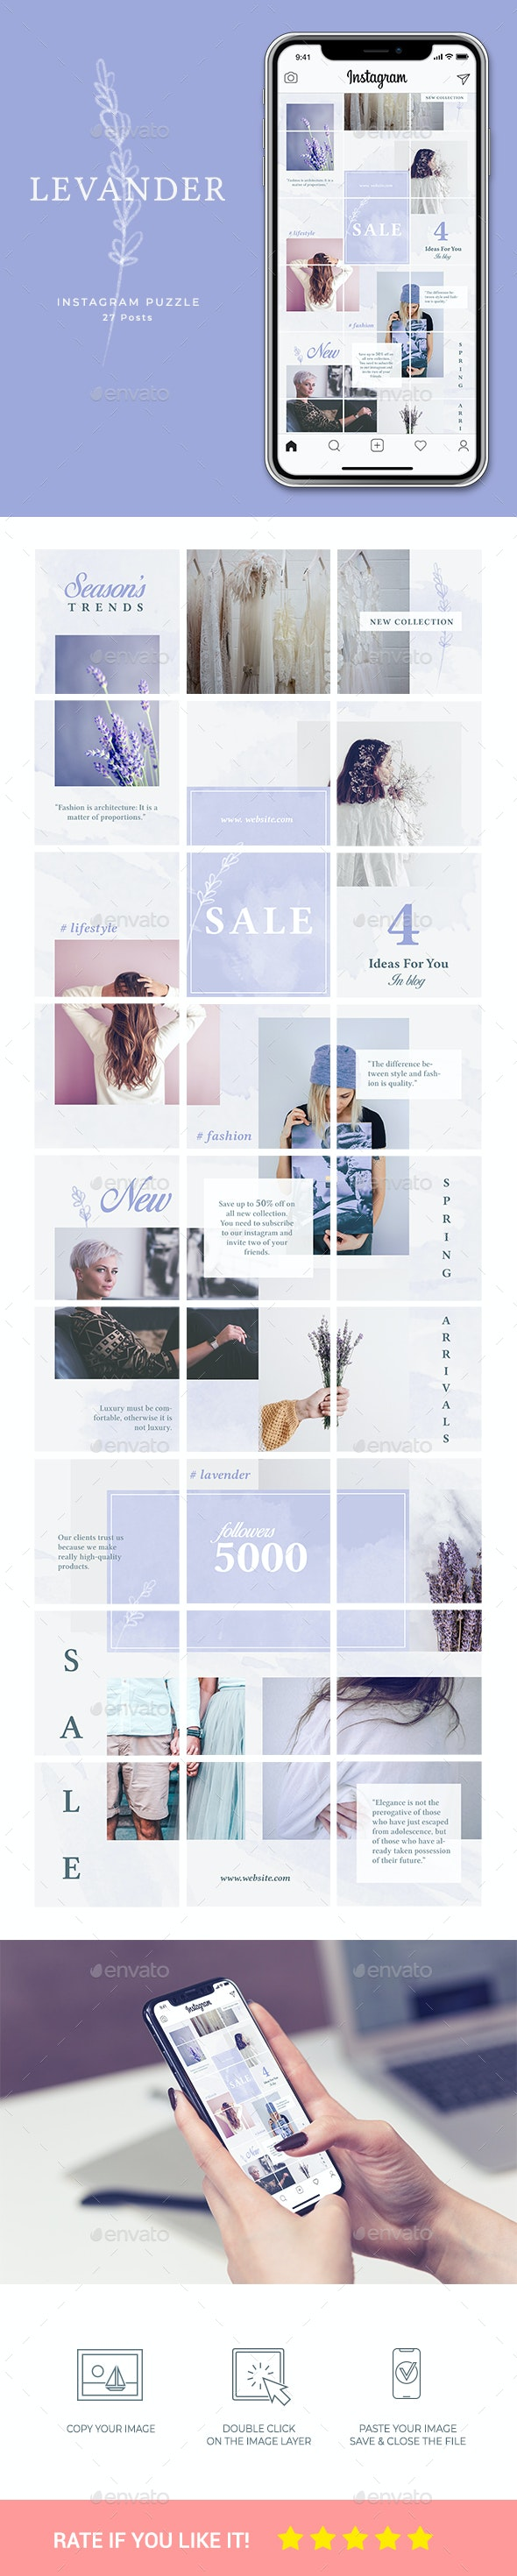 Instagram Puzzle Template - Social Media Web Elements